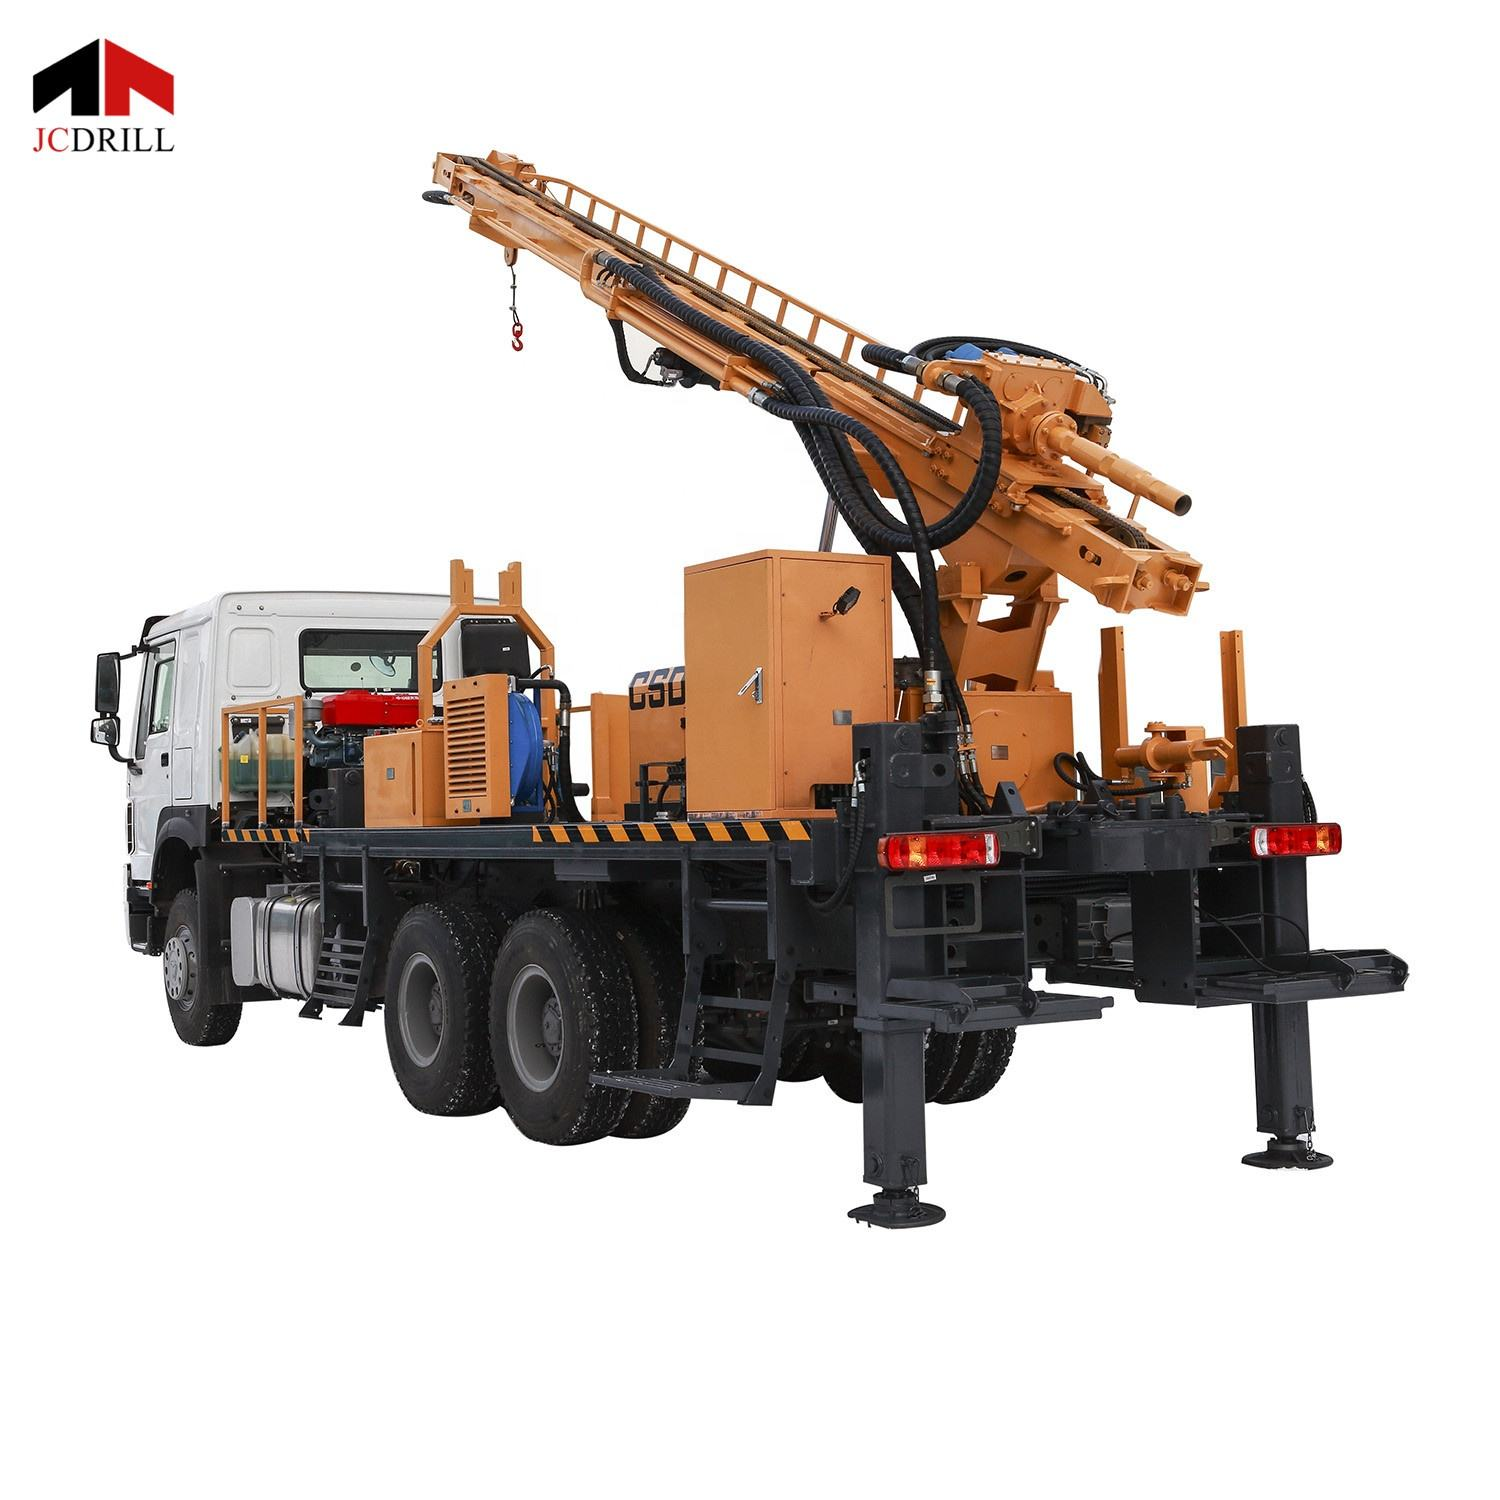 Truck mounted bore hole water well drilling rig for sale